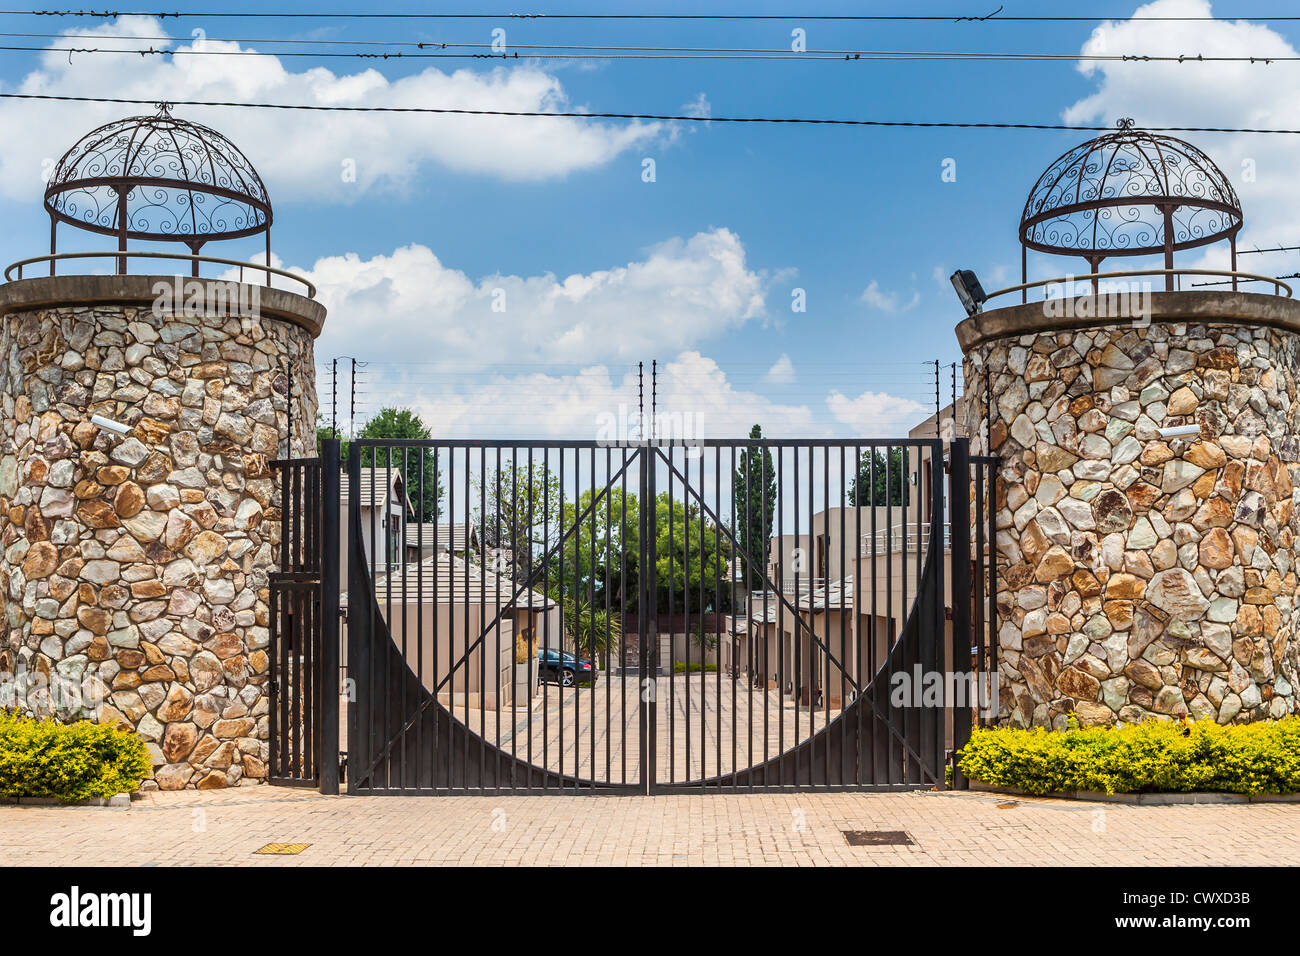 Gated Development High Walls And Electric Fences